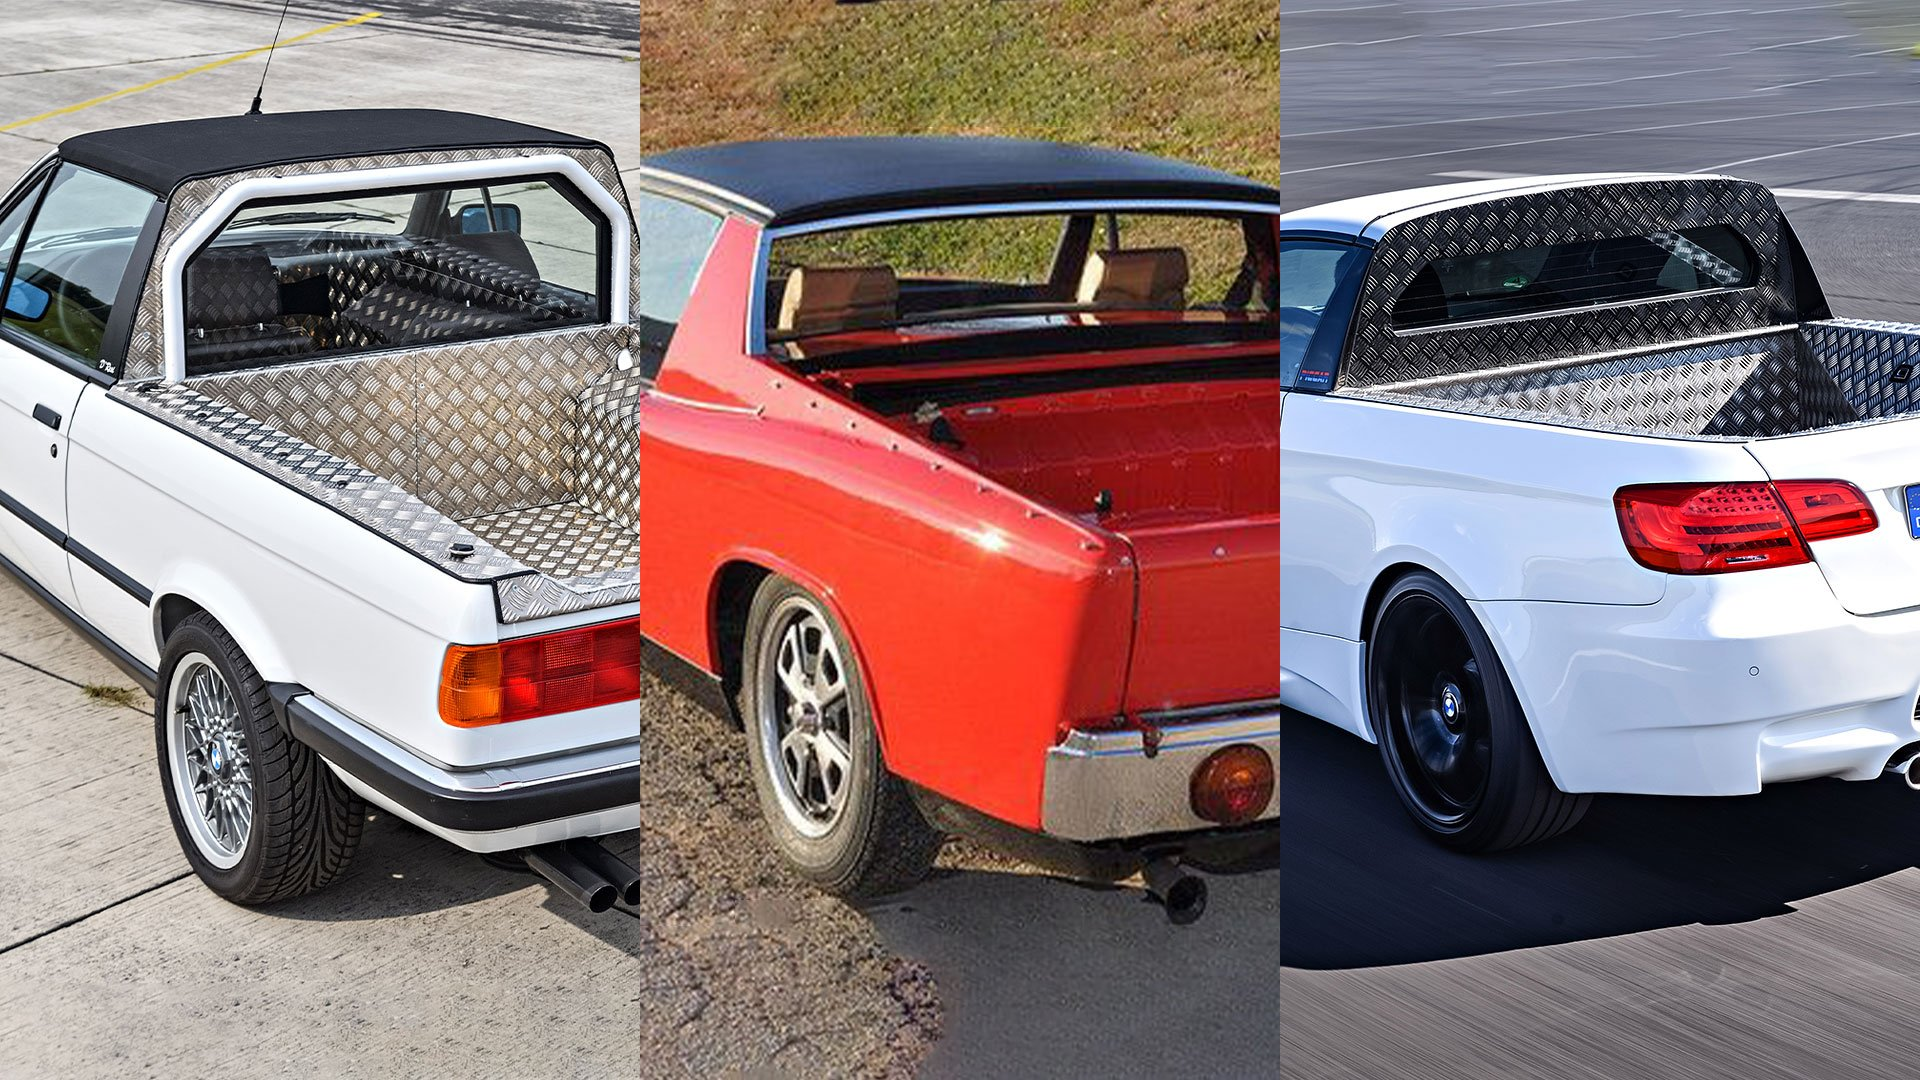 The European Utes You Might Not Know About